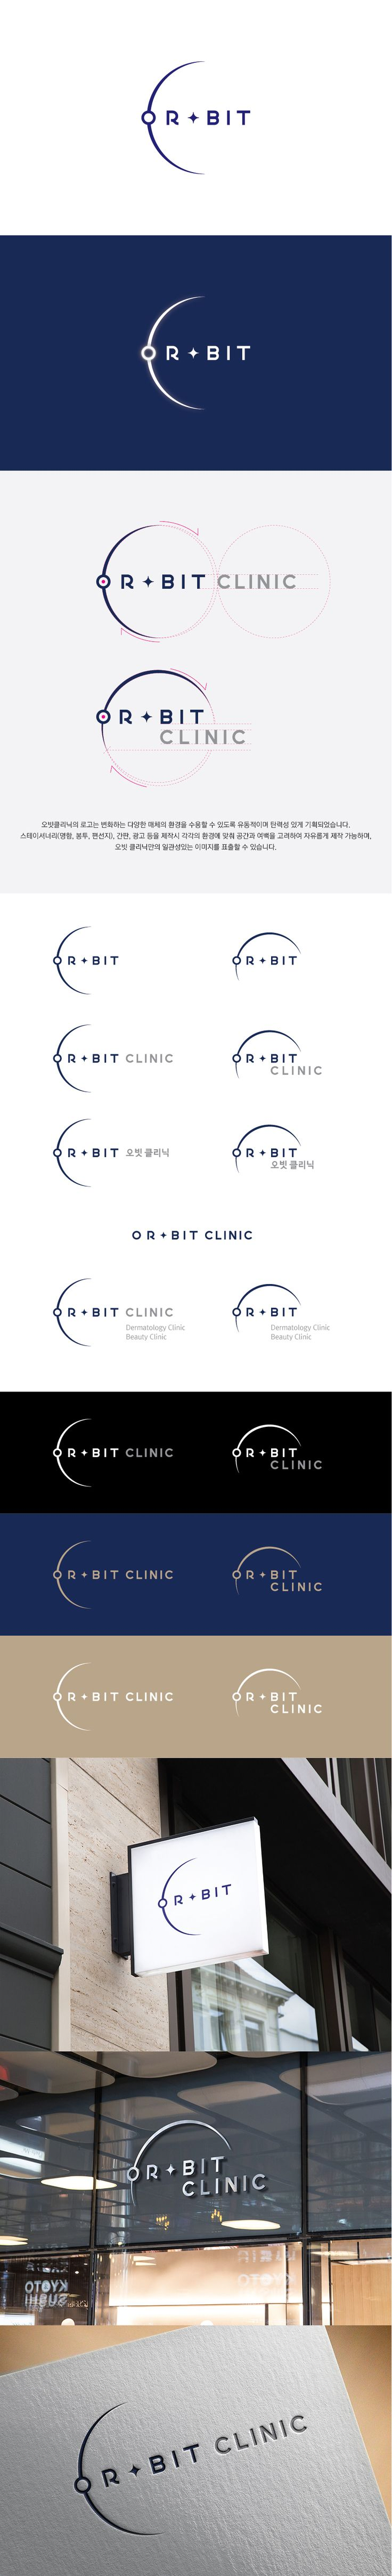 오빗클리닉 Orbit clinic / by designessay